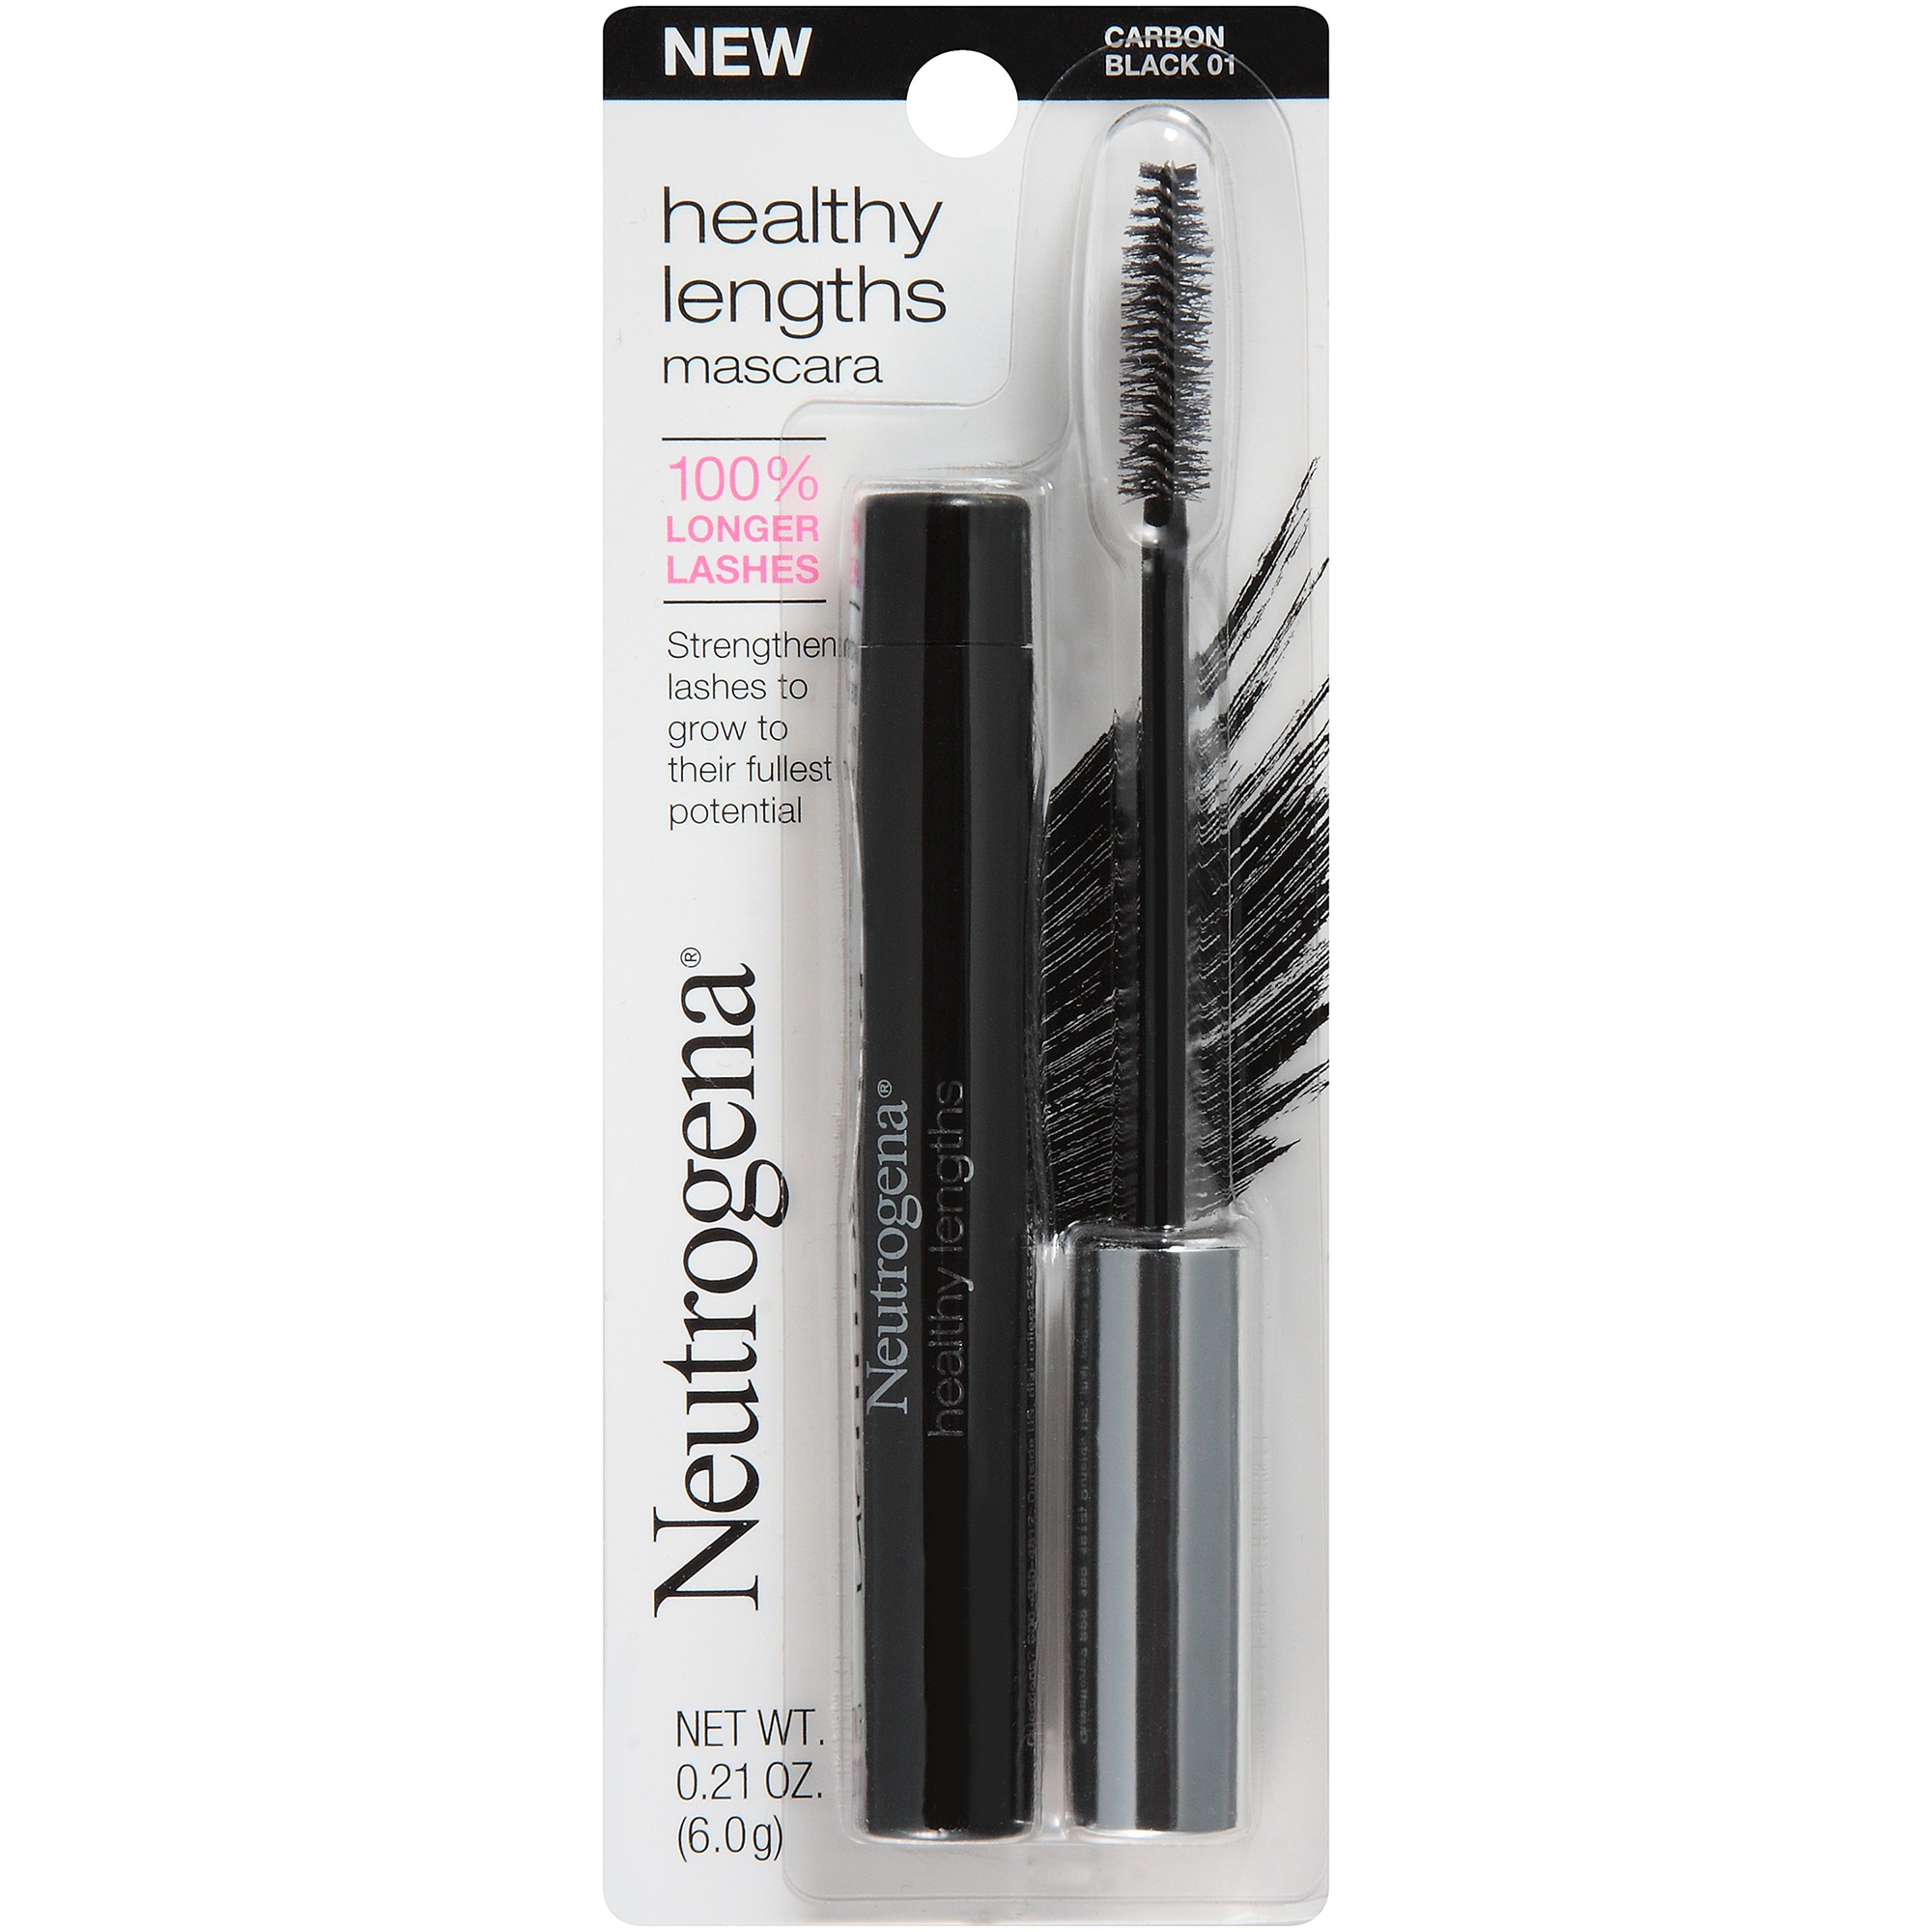 Neutrogena Healthy Lengths Mascara, Carbon Black 01, .21 Oz